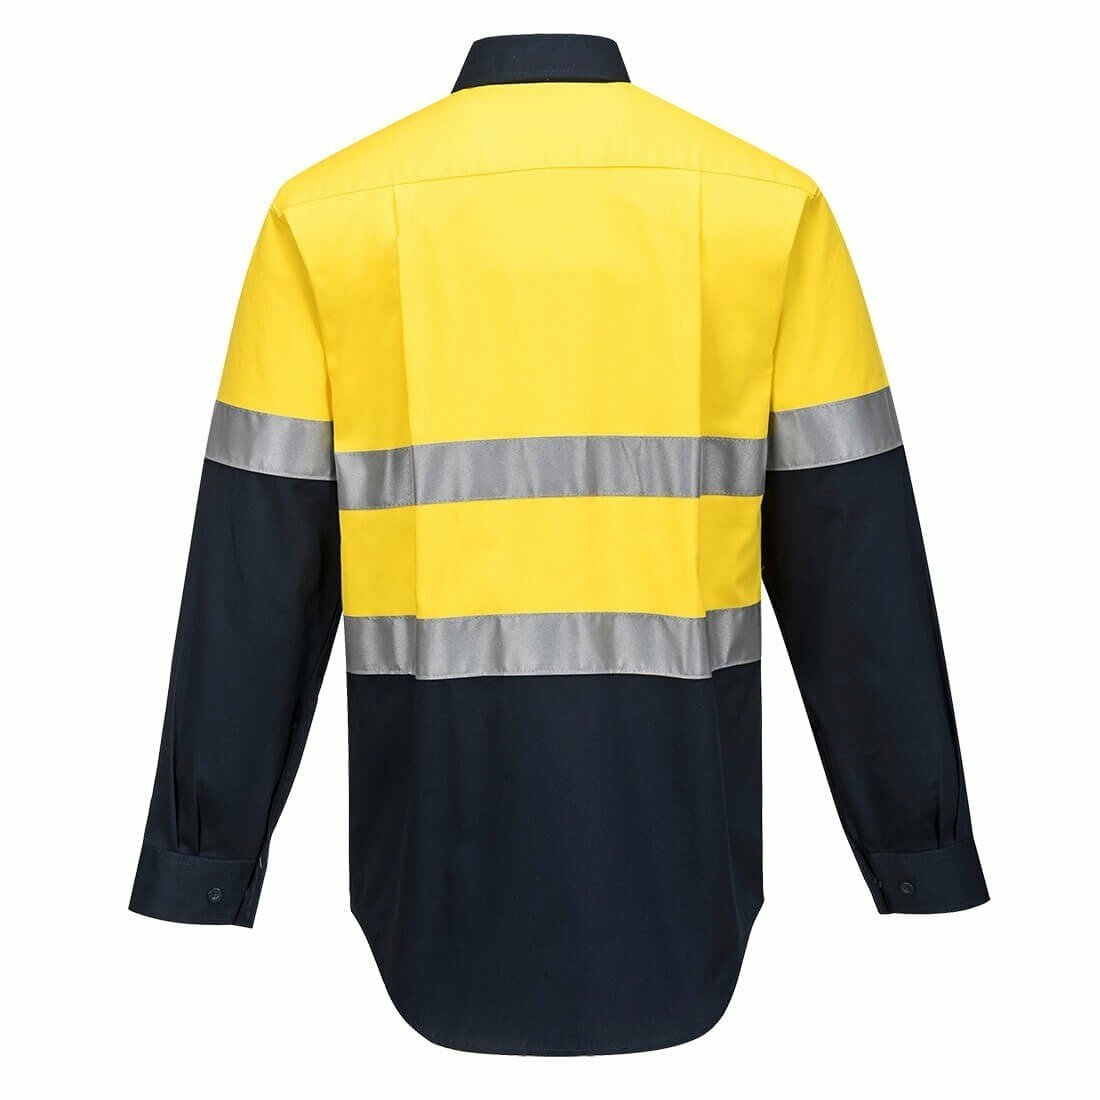 MA101 Hi-Vis Two Tone Regular Weight Long Sleeve Shirt with Tape